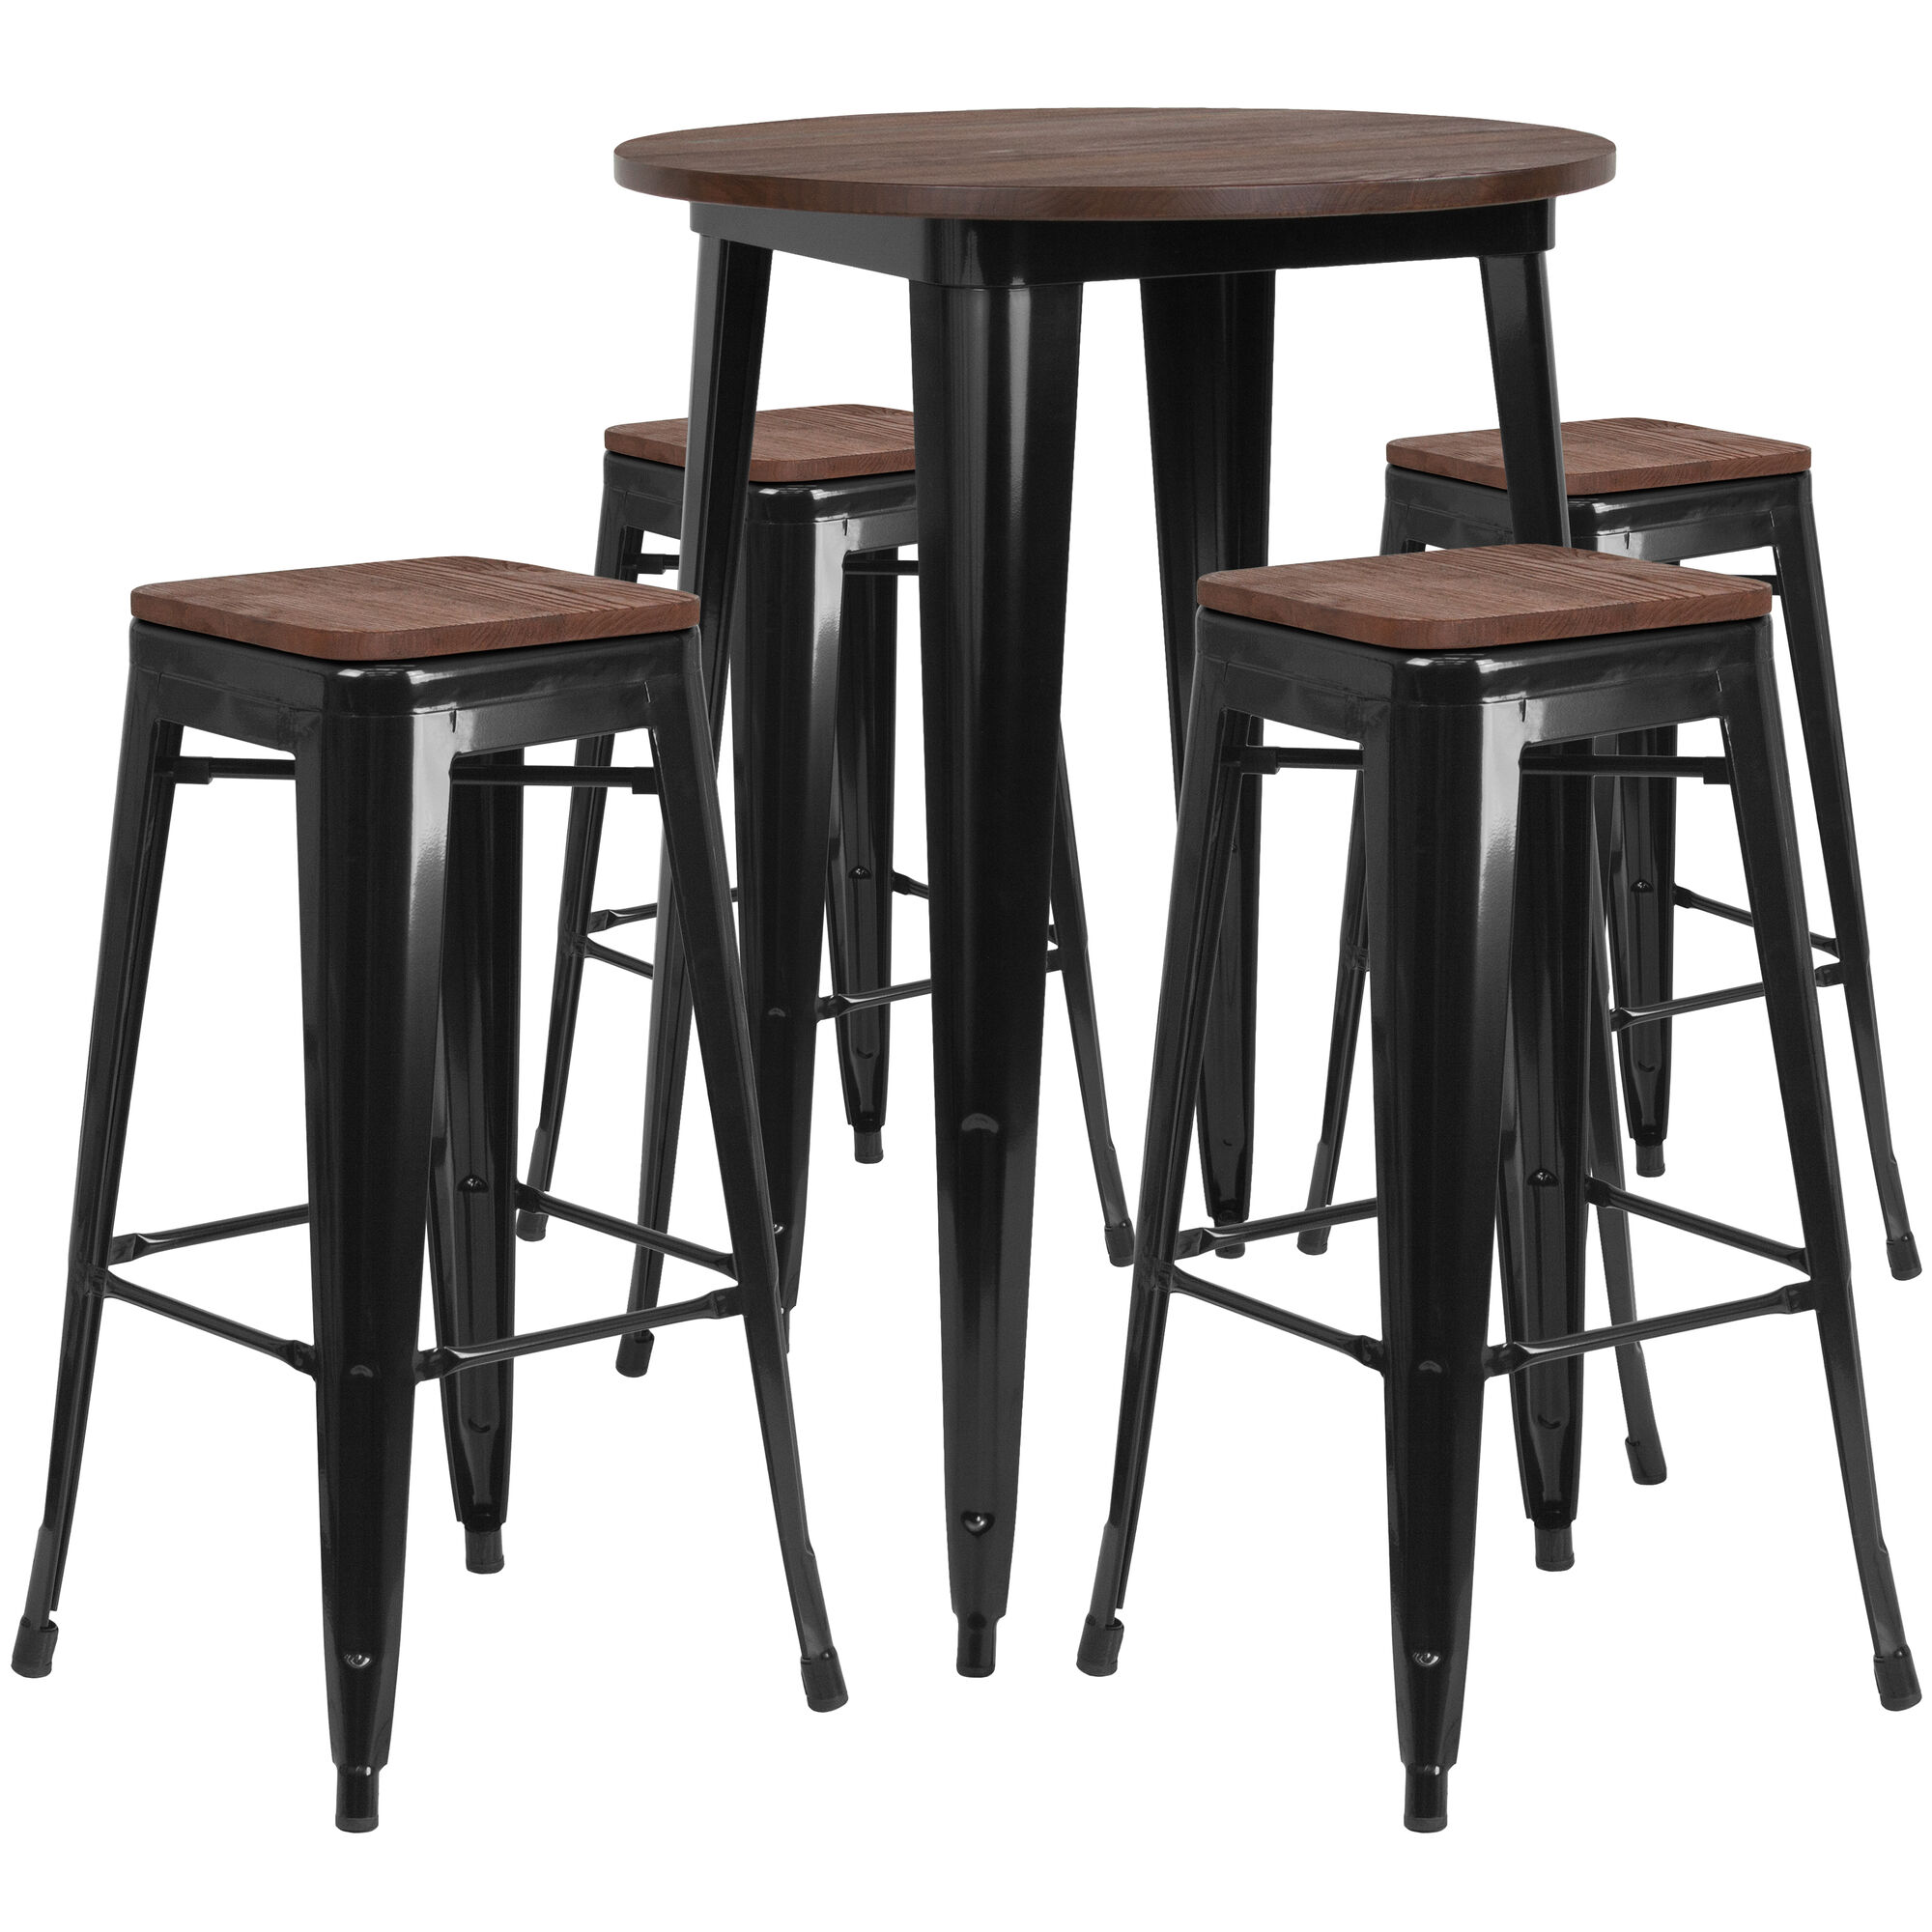 Excellent 30 Round Black Metal Bar Table Set With Wood Top And 4 Backless Stools Gmtry Best Dining Table And Chair Ideas Images Gmtryco